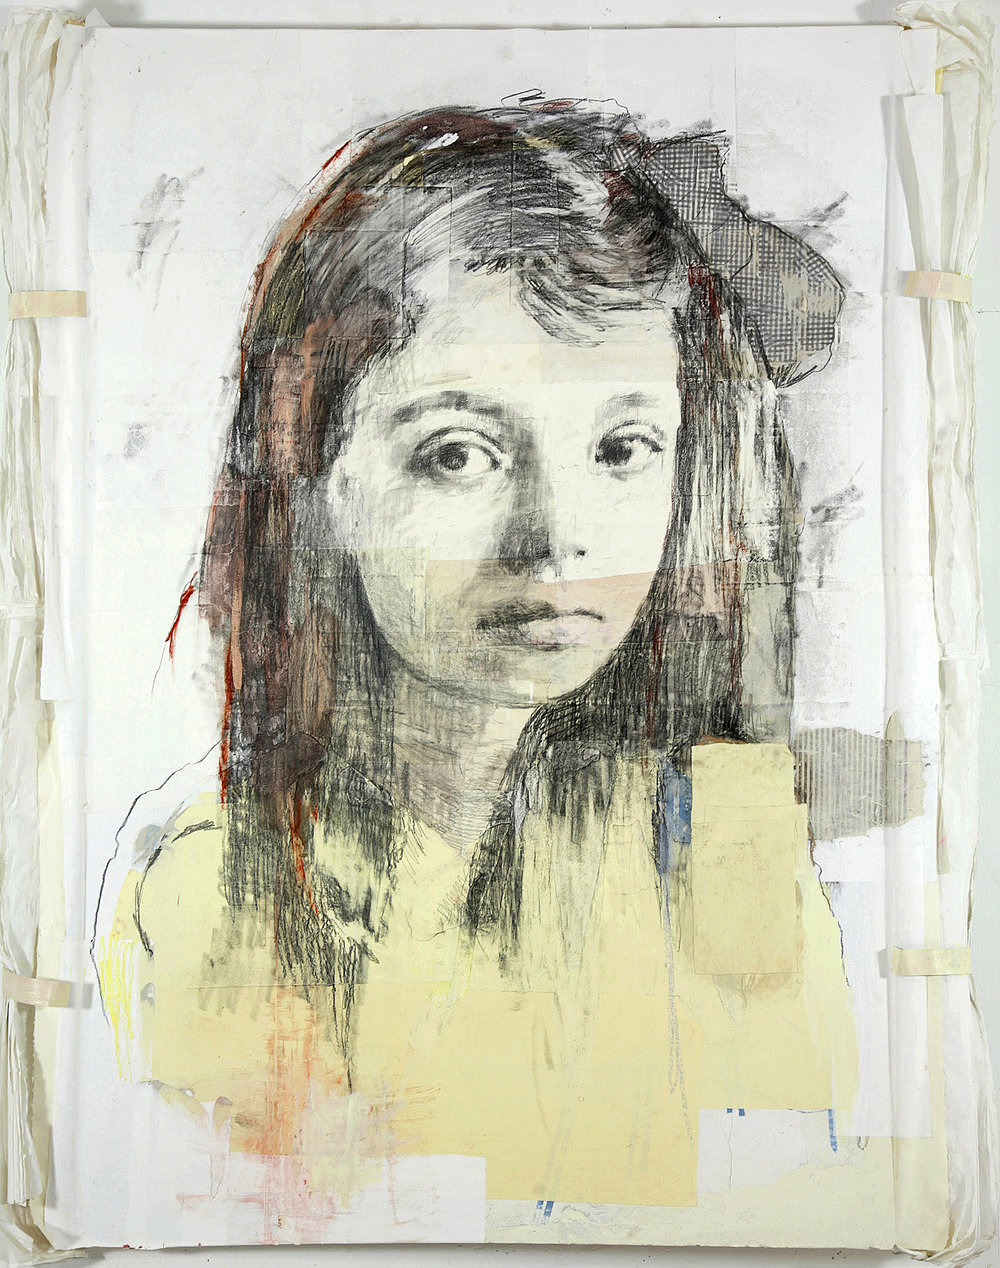 Marguerite Duras, 2007, 72 x 48 inches, Mixed media on board